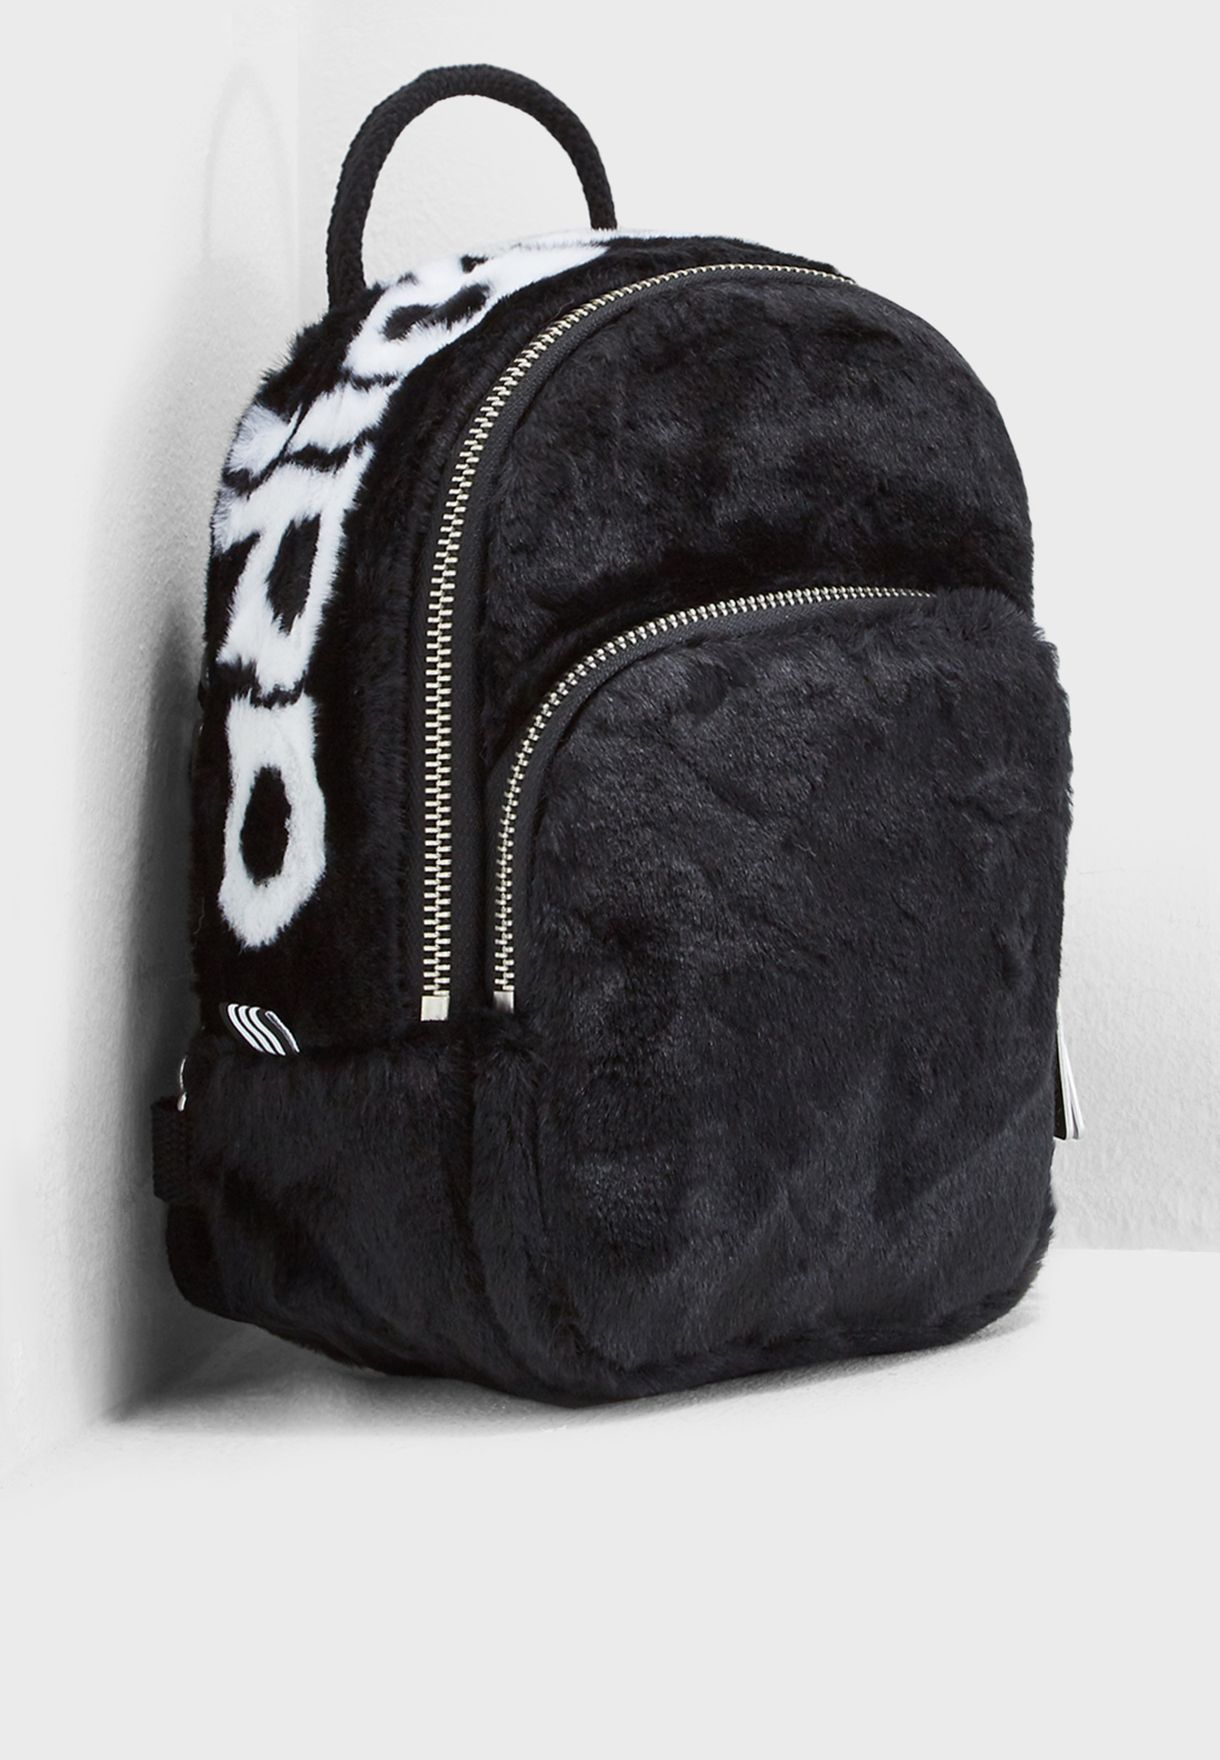 809d28875caa Shop adidas Originals black adicolor classic Mini Backpack DH4372 ...